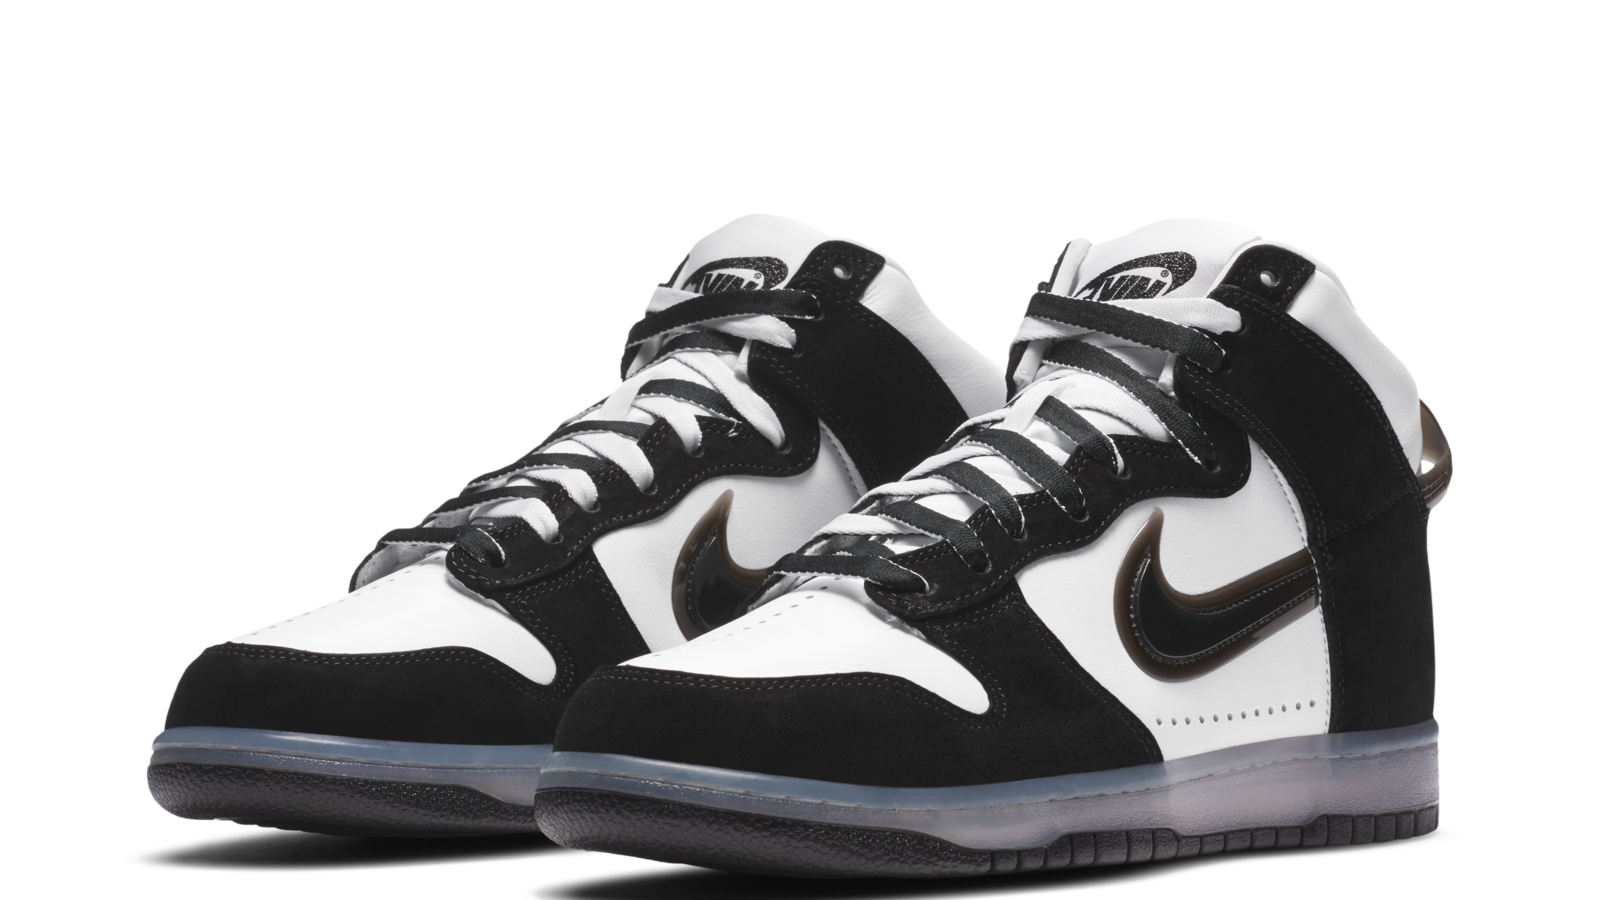 Nike Dunk Slam Jam Release Date and Official Images 6